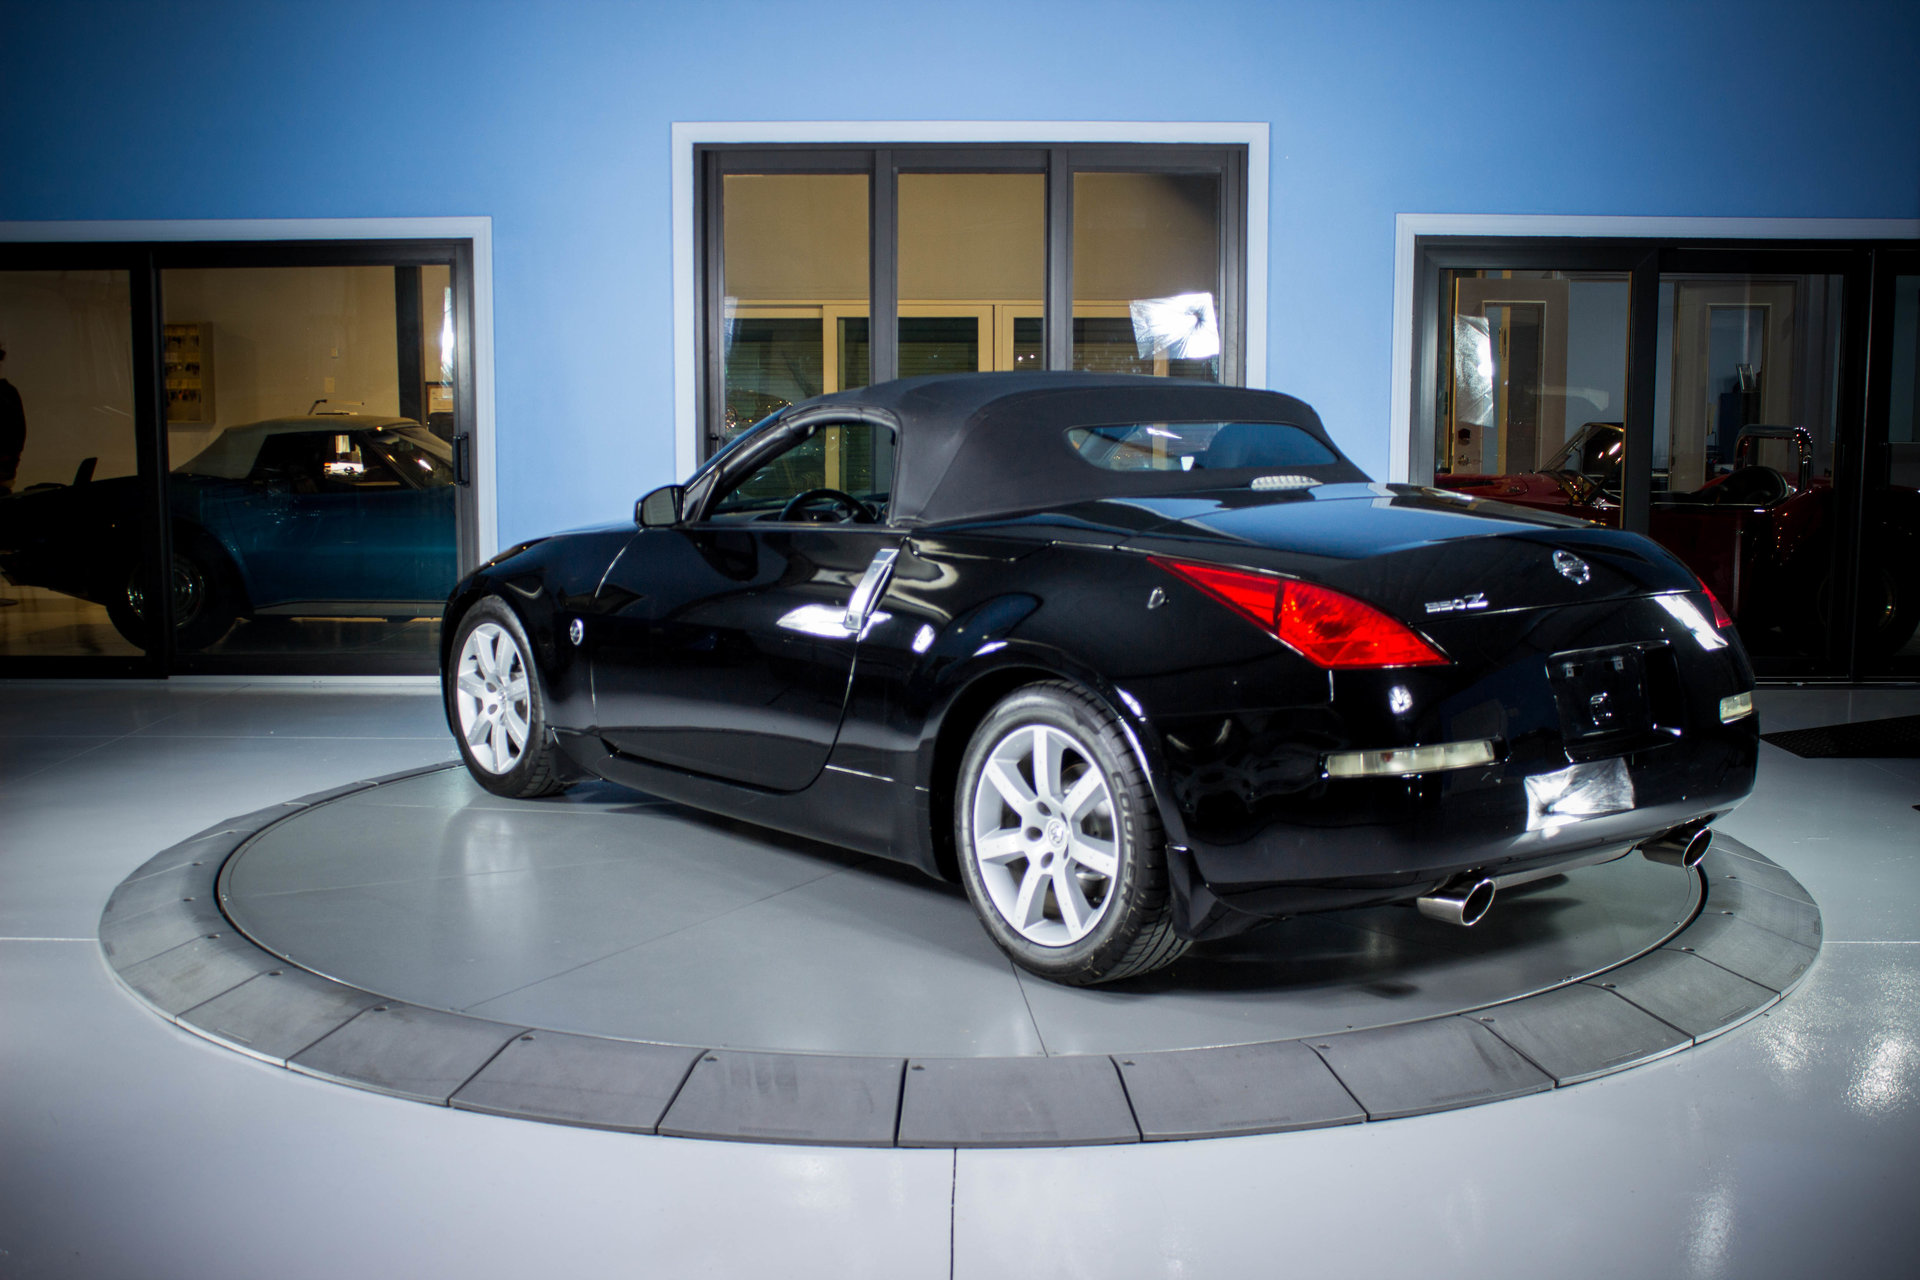 2004 Nissan 350z Convertible | Classic Cars & Used Cars For Sale in ...